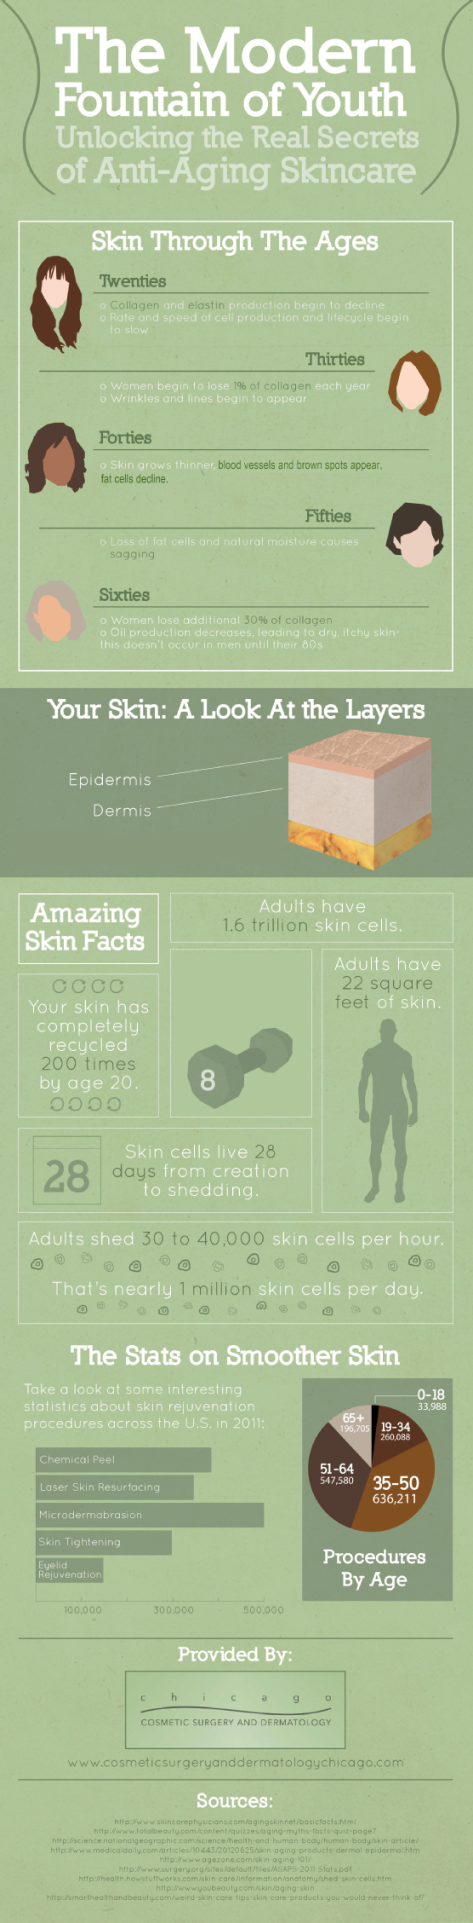 the-modern-fountain-of-youth-unlocking-the-real-secrets-of-antiaging-skincare_50c9067326c59